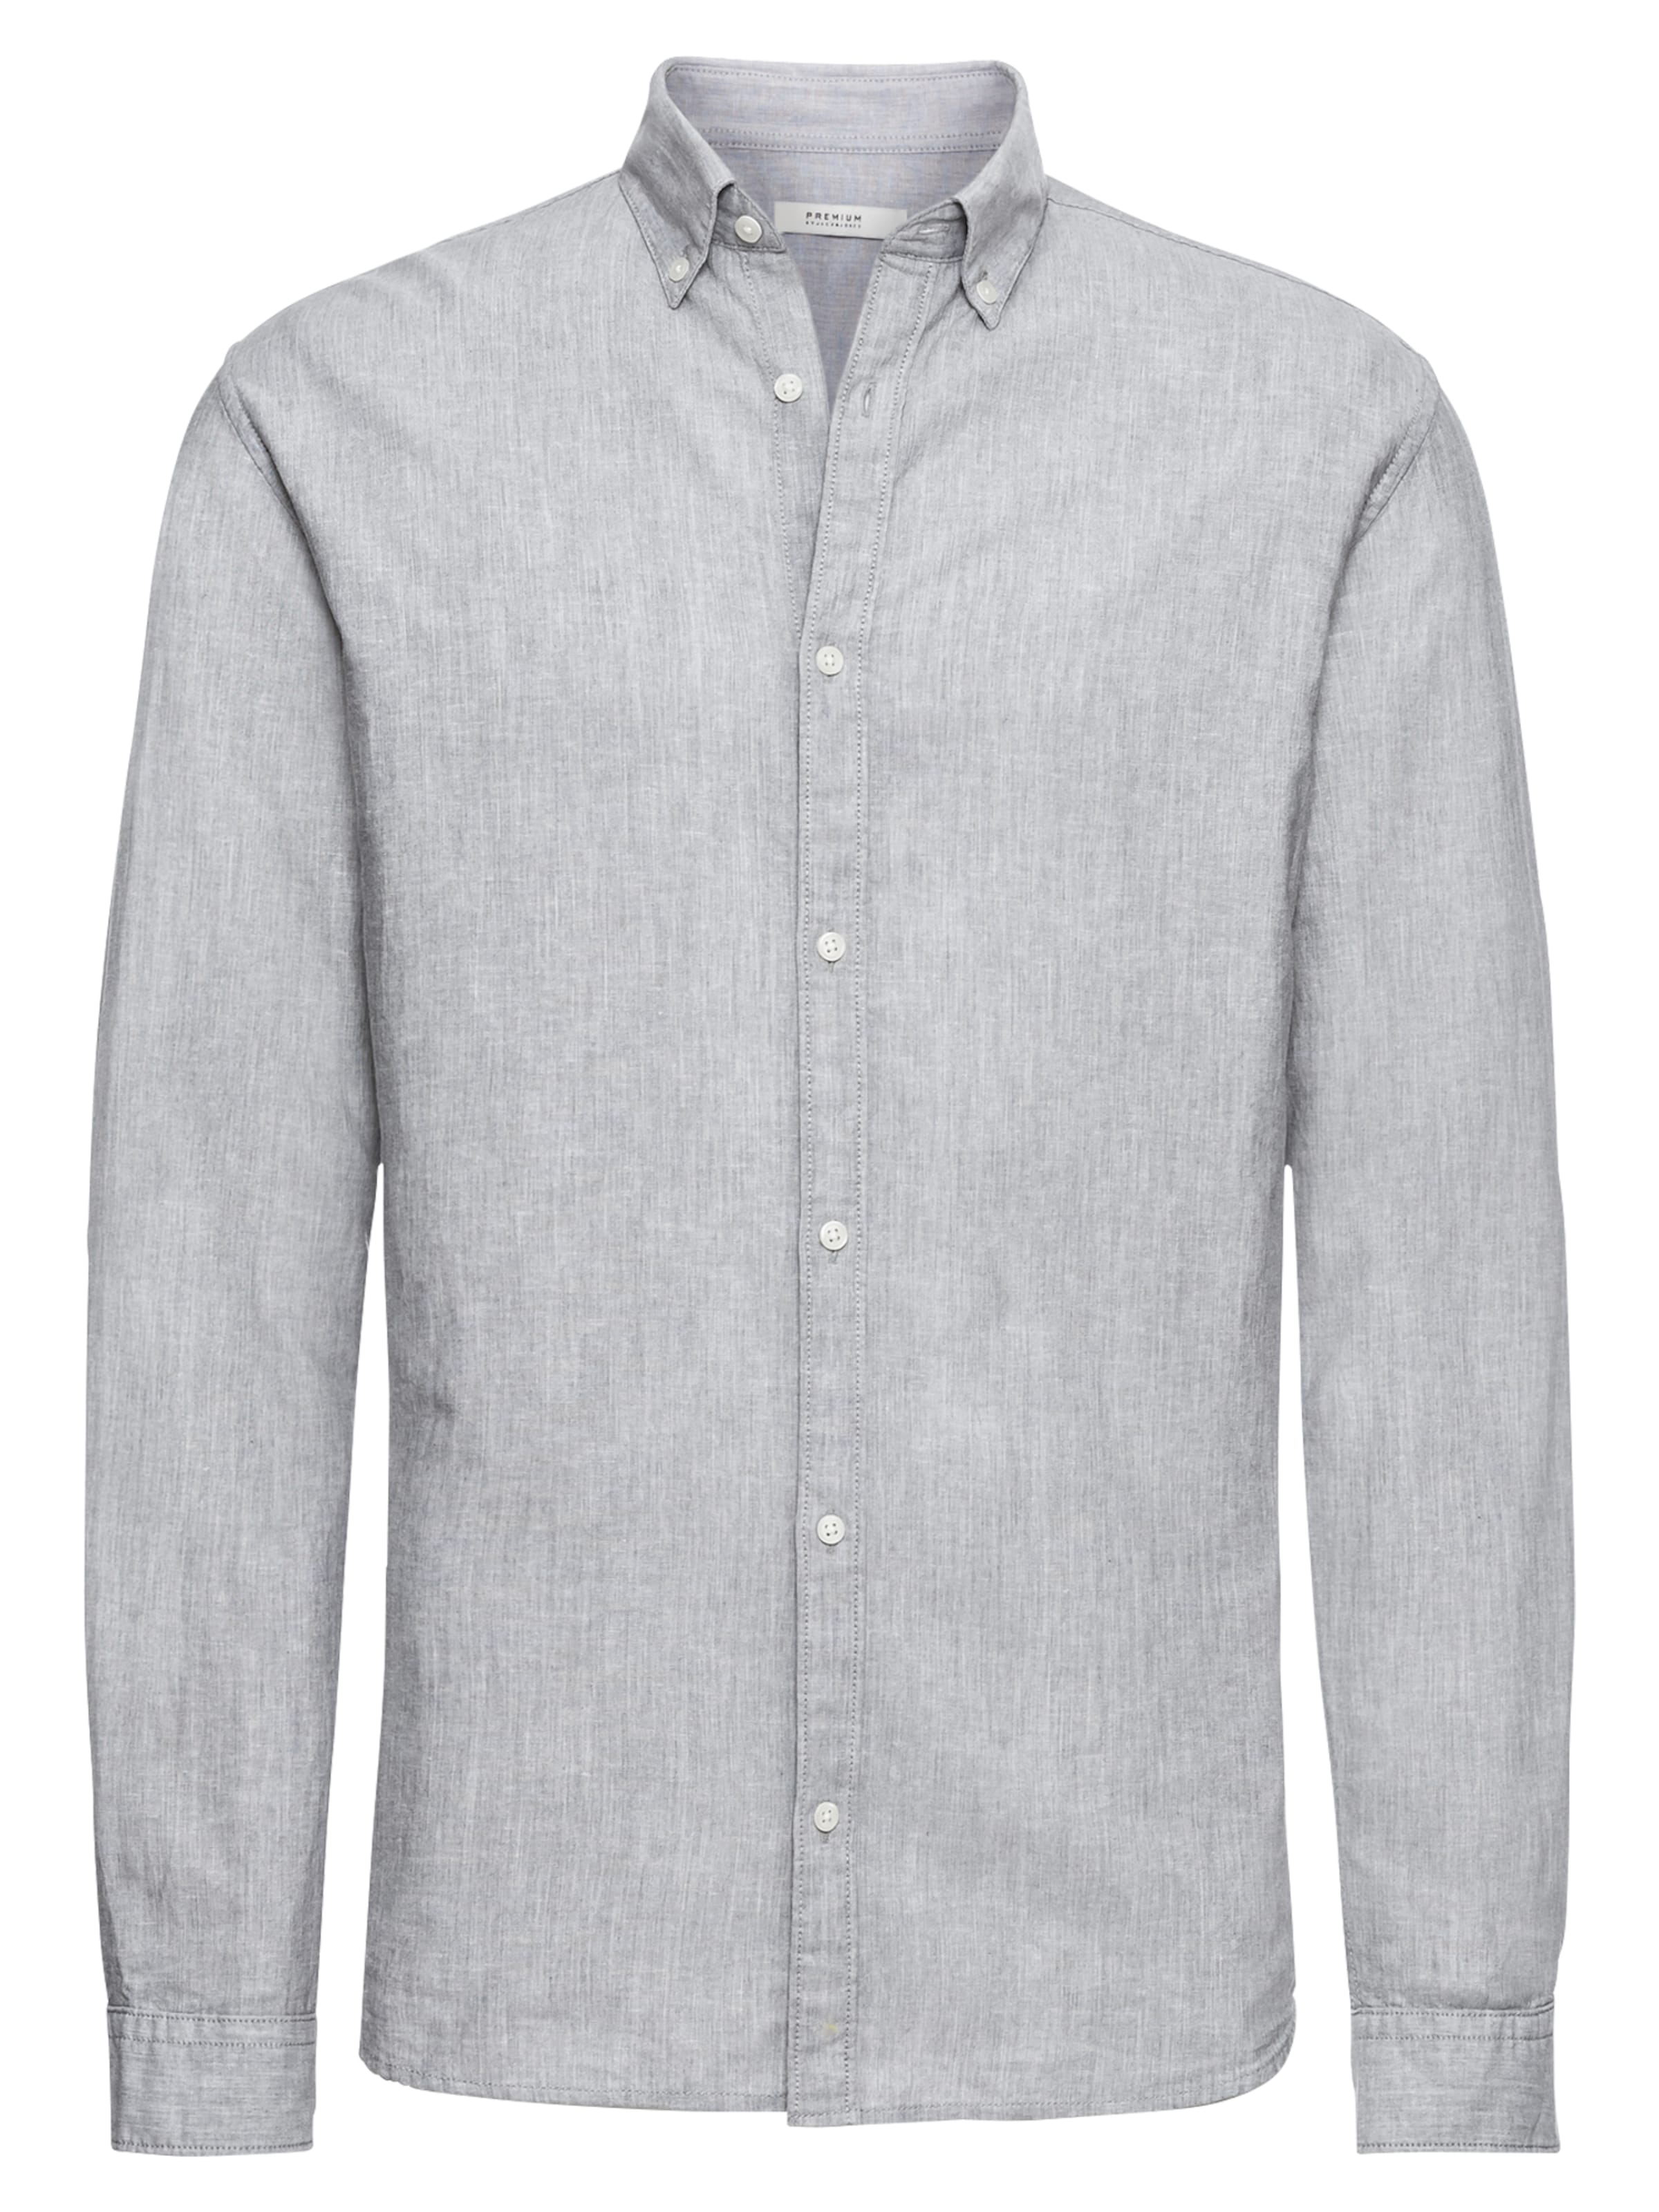 'jprsummer Hemd In Down Jones Graumeliert Jackamp; Sts' L Shirt s Button QCeBorWEdx